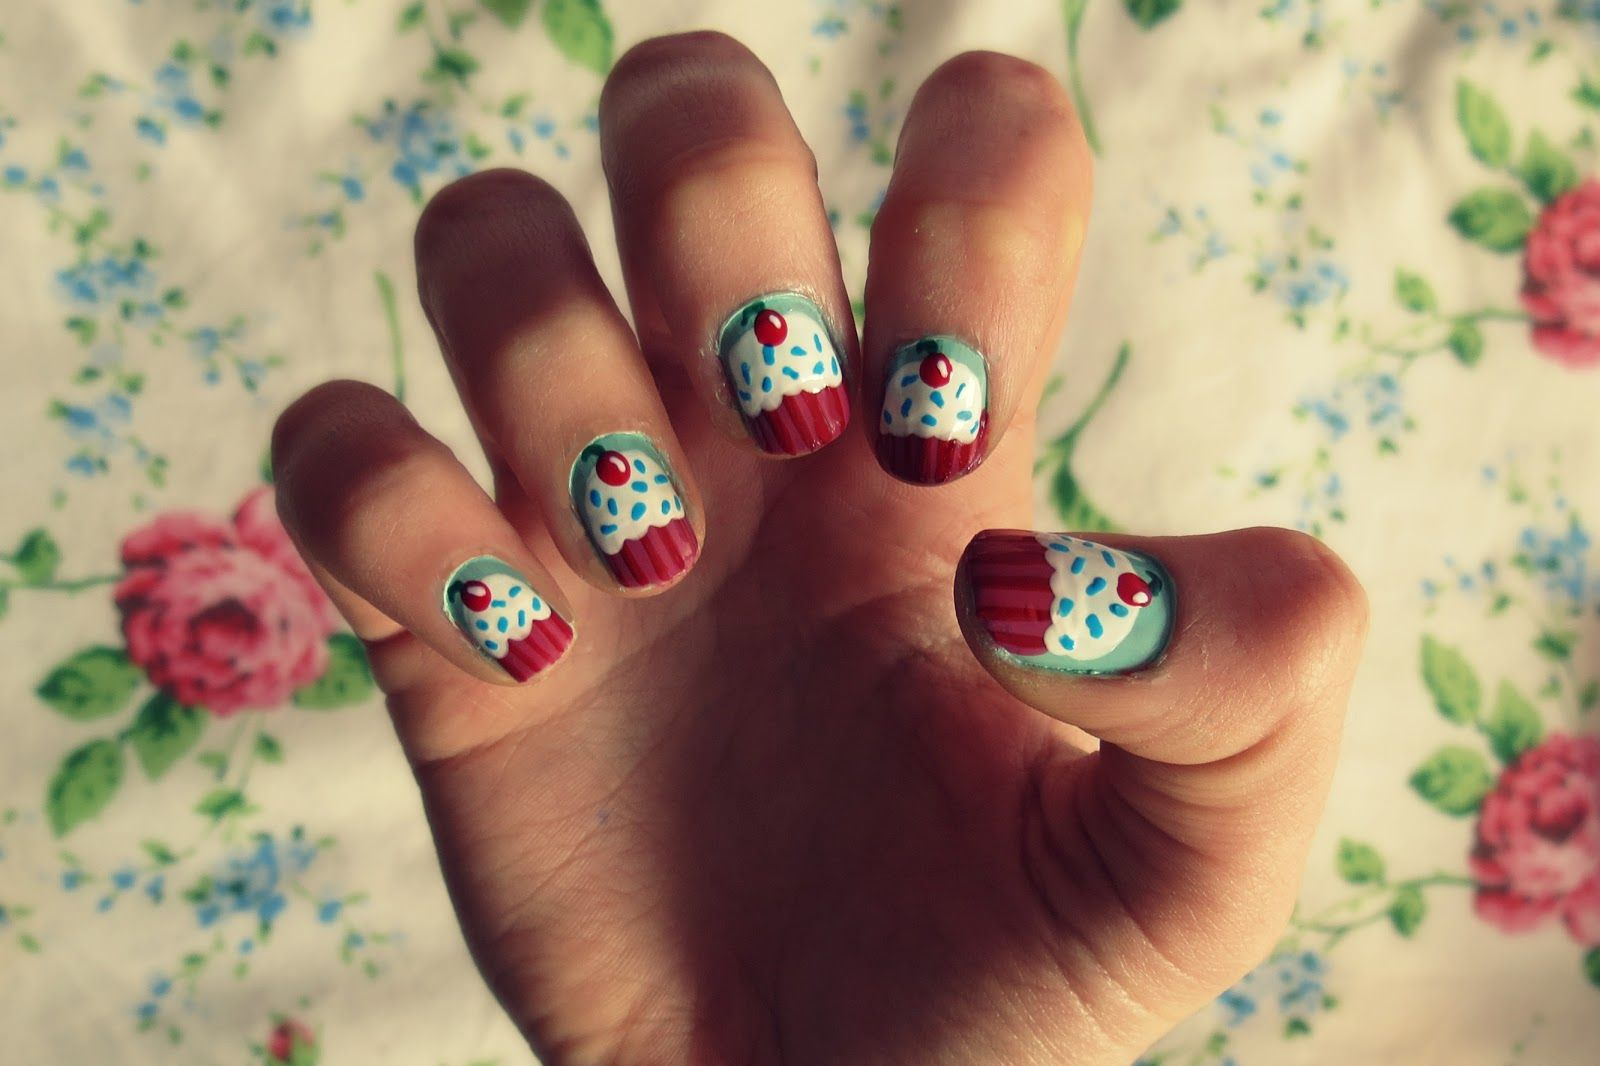 Islaay uk beauty fashion and nail art blog cupcake nail art 3 here we have 15 cute cupcake nail art tutorials for you to paint those yummy cupcakes onto your nails solutioingenieria Gallery